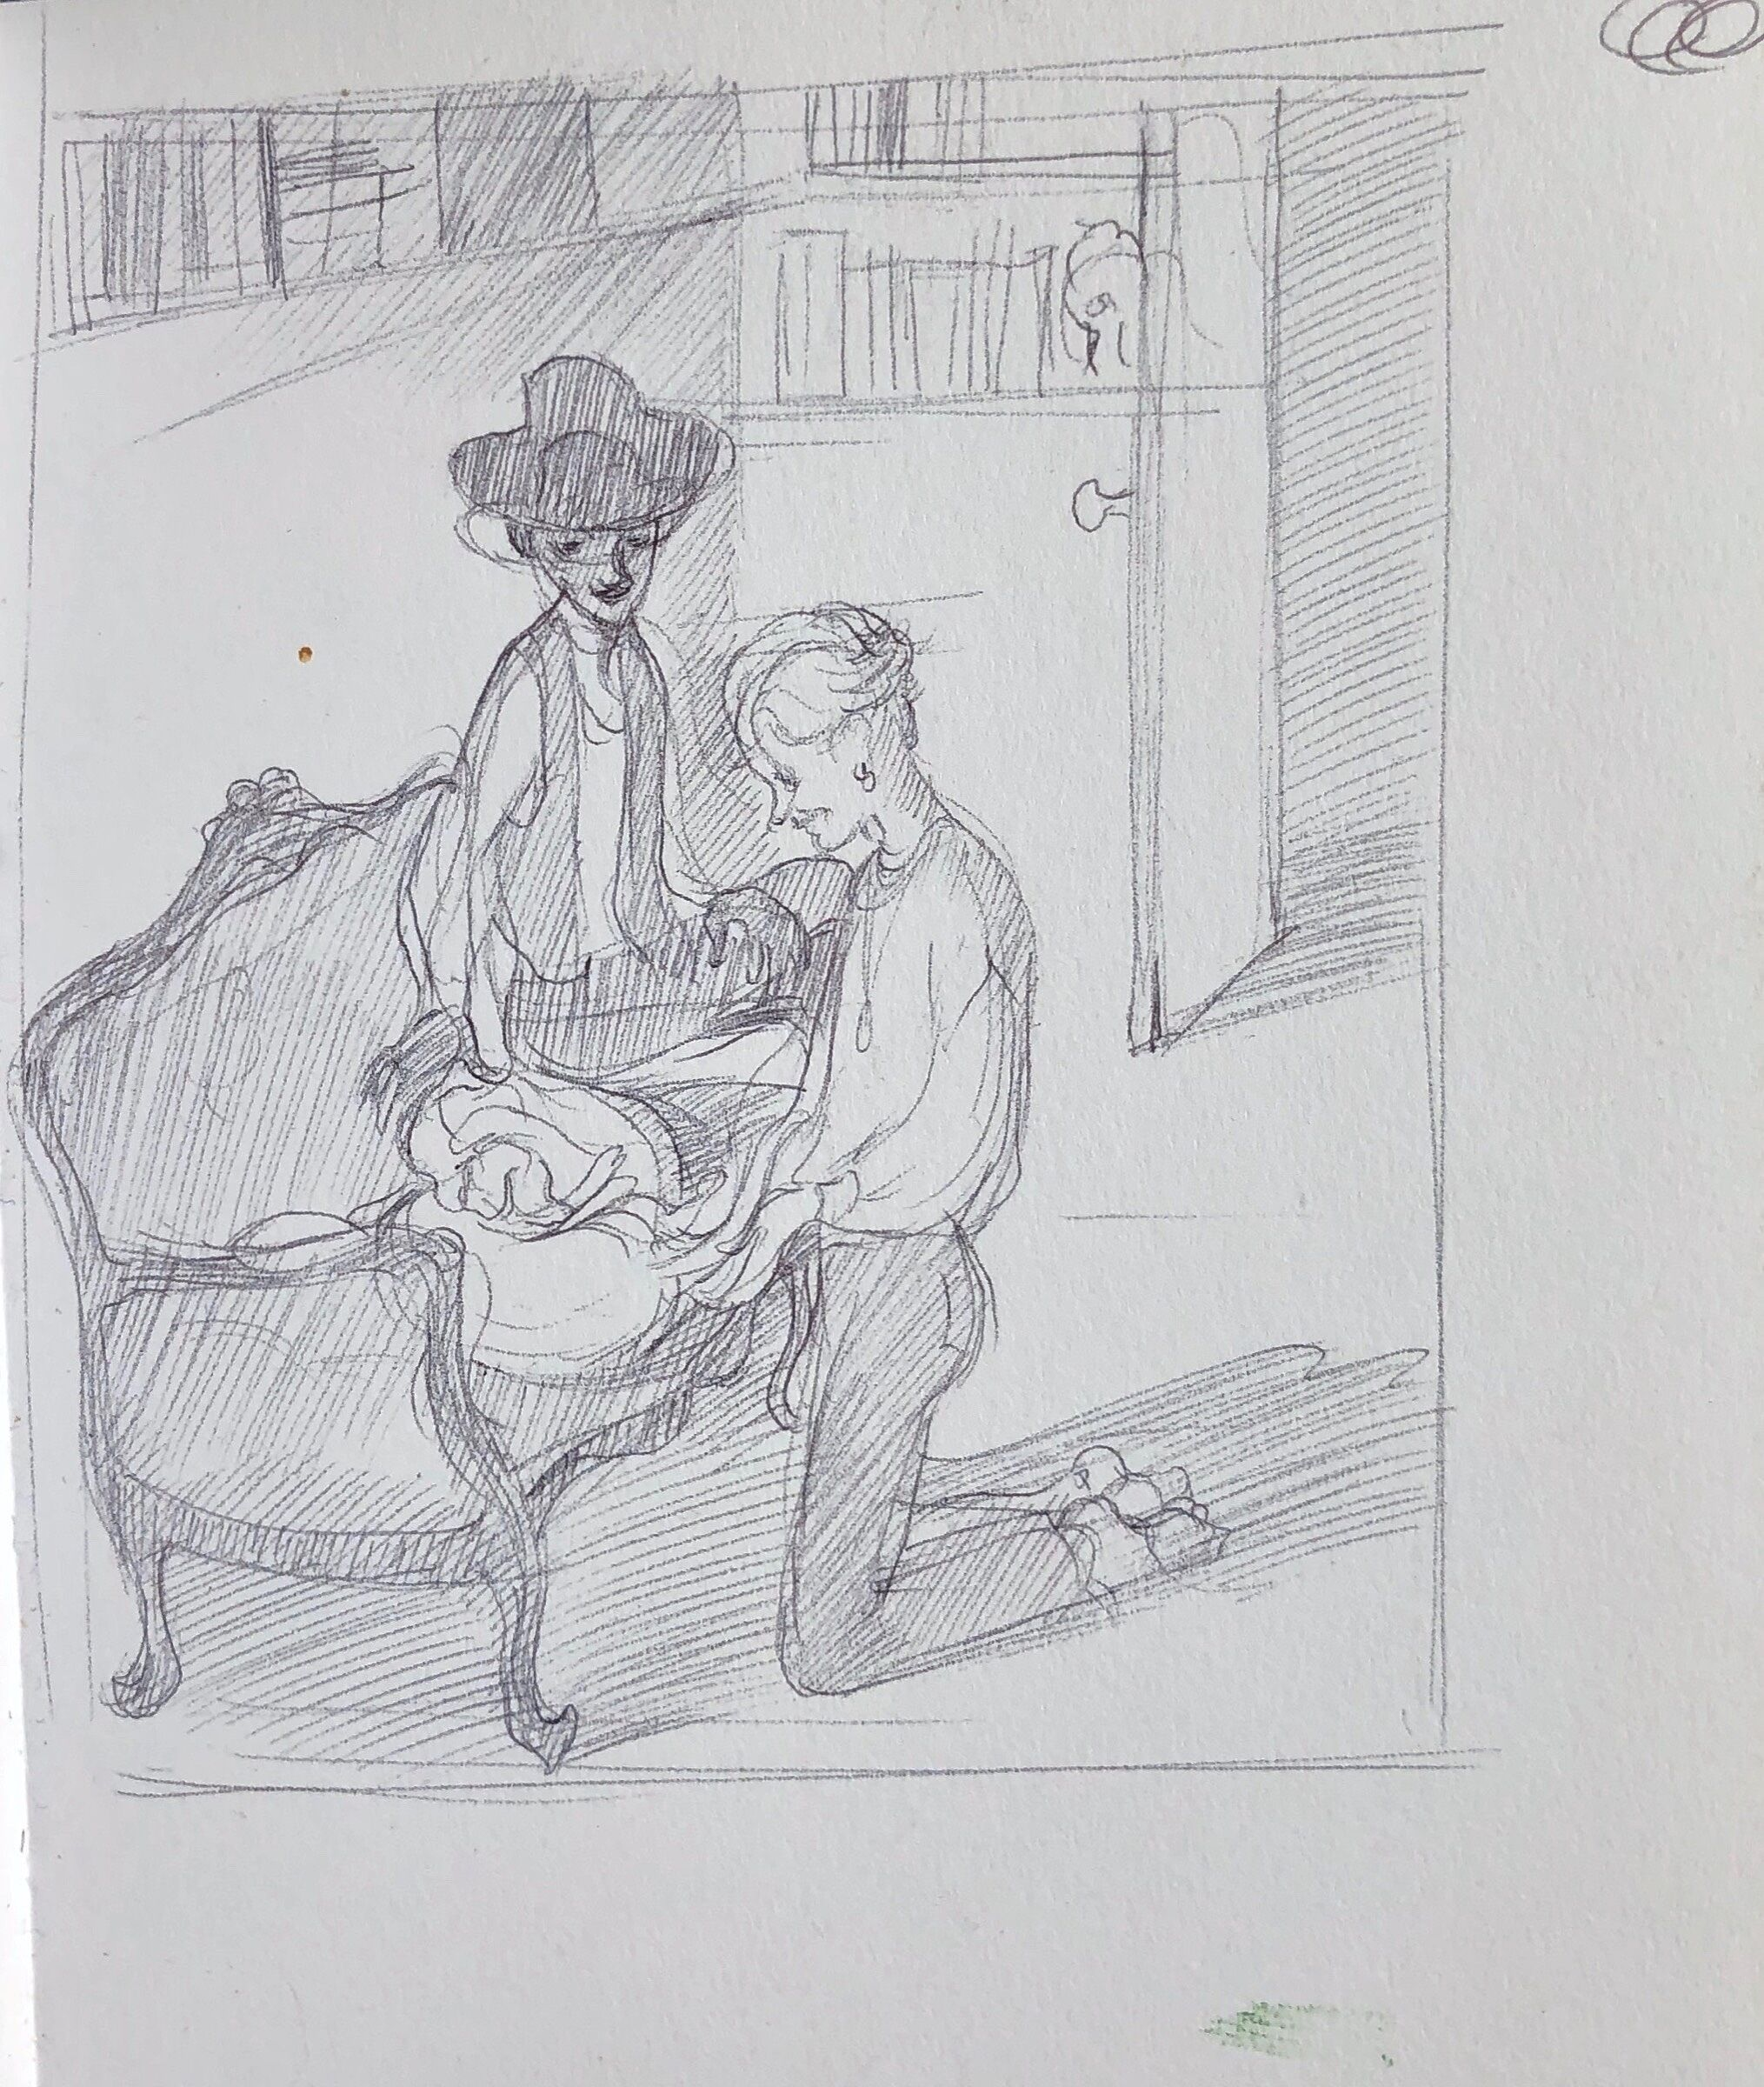 A sketch drawing of of two people playing with a dog on a couch.